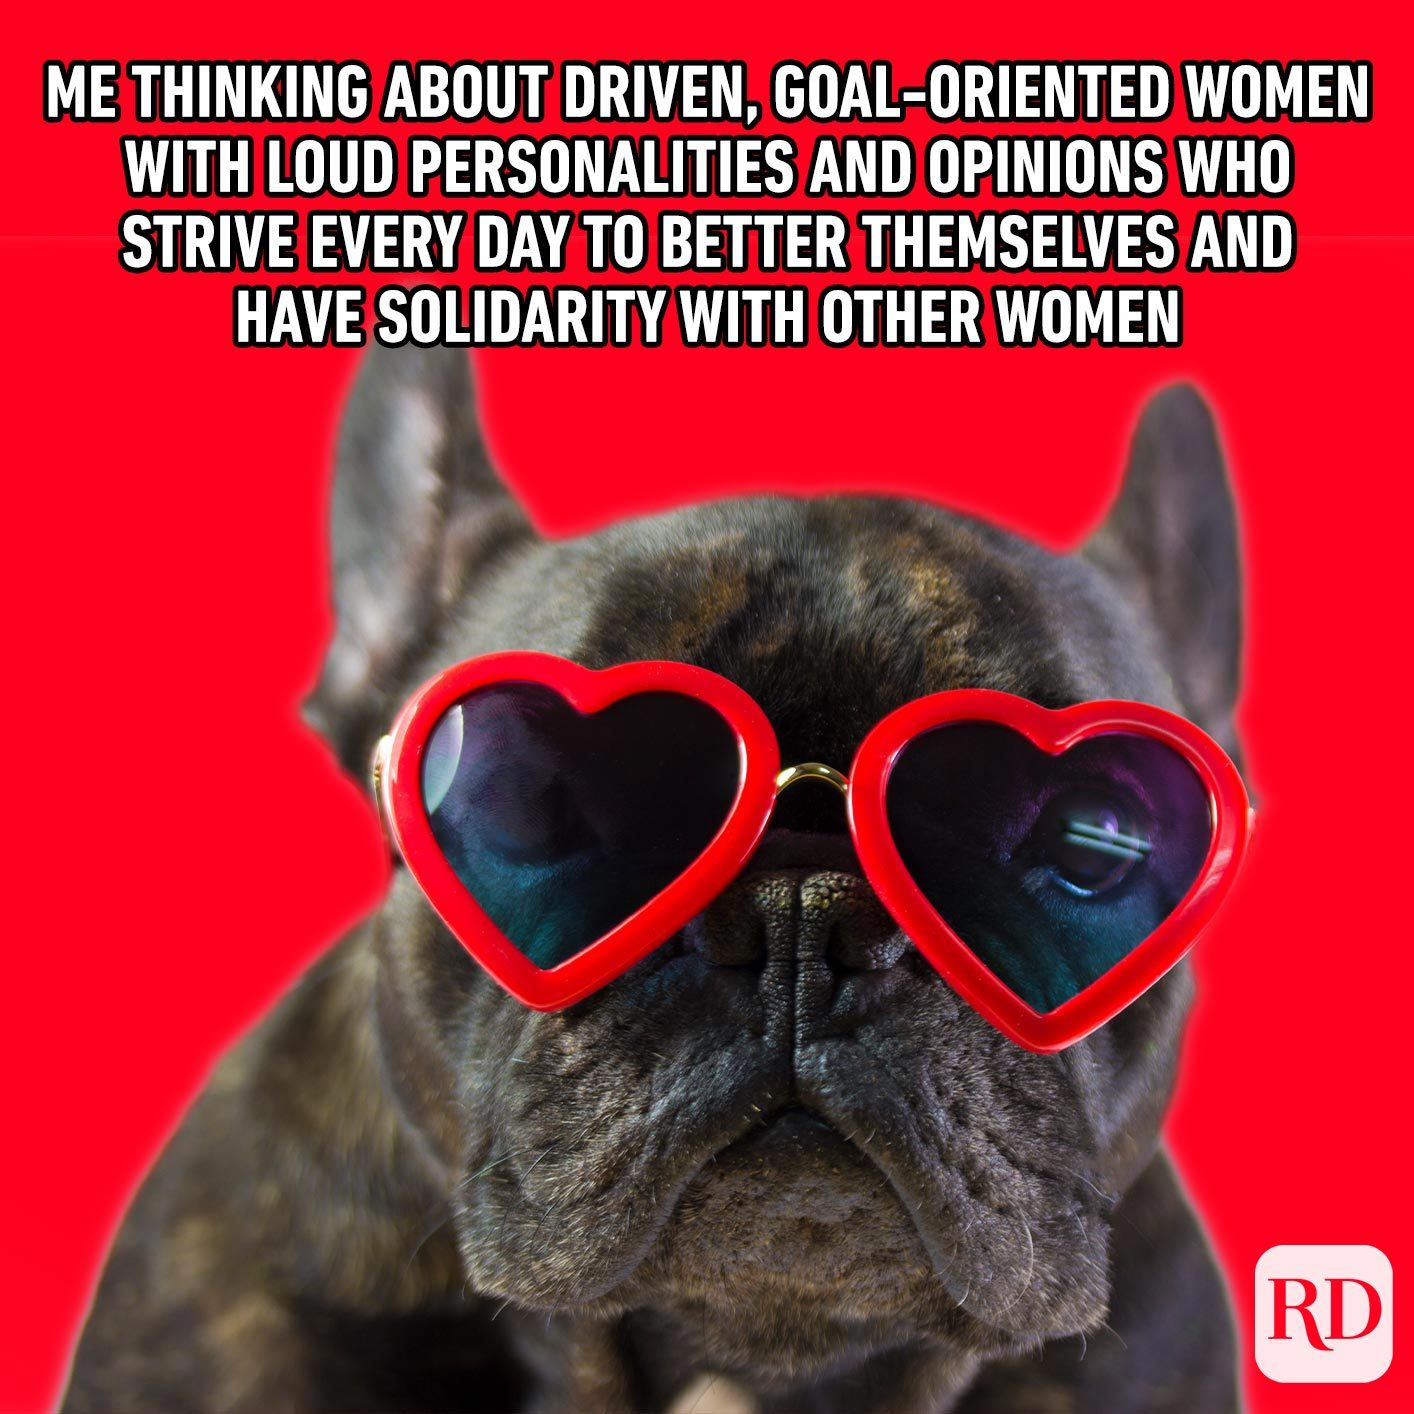 Dog with heart glasses. Meme text: Me thinking about driven, goal-oriented women with loud personalities and opinions who strive every day to better themselves and have solidarity with other women